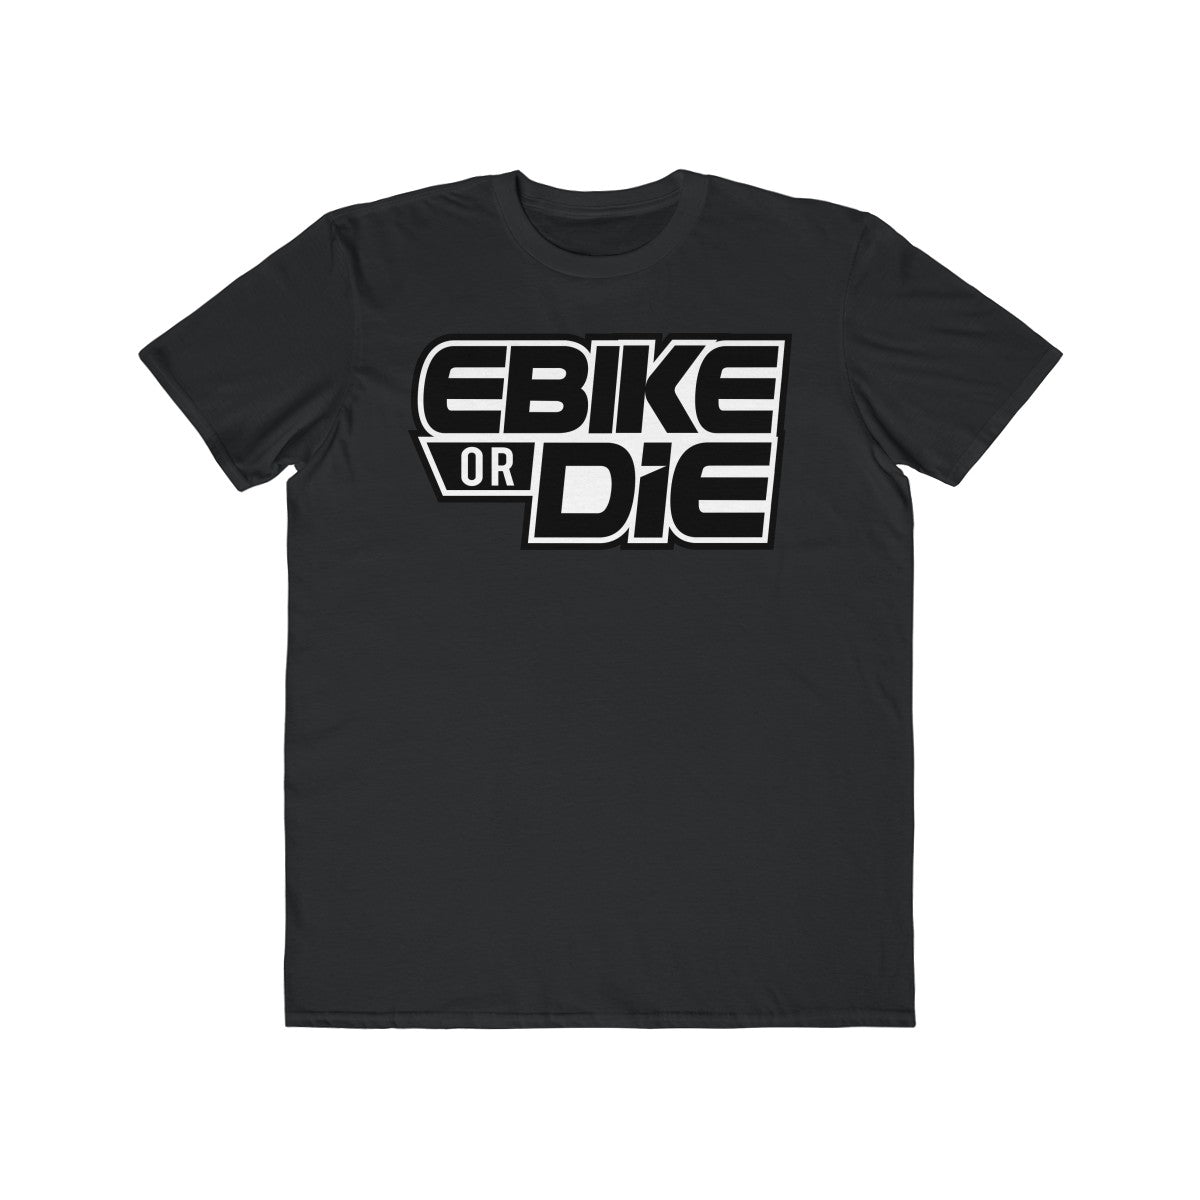 Ebike or Die T-shirt